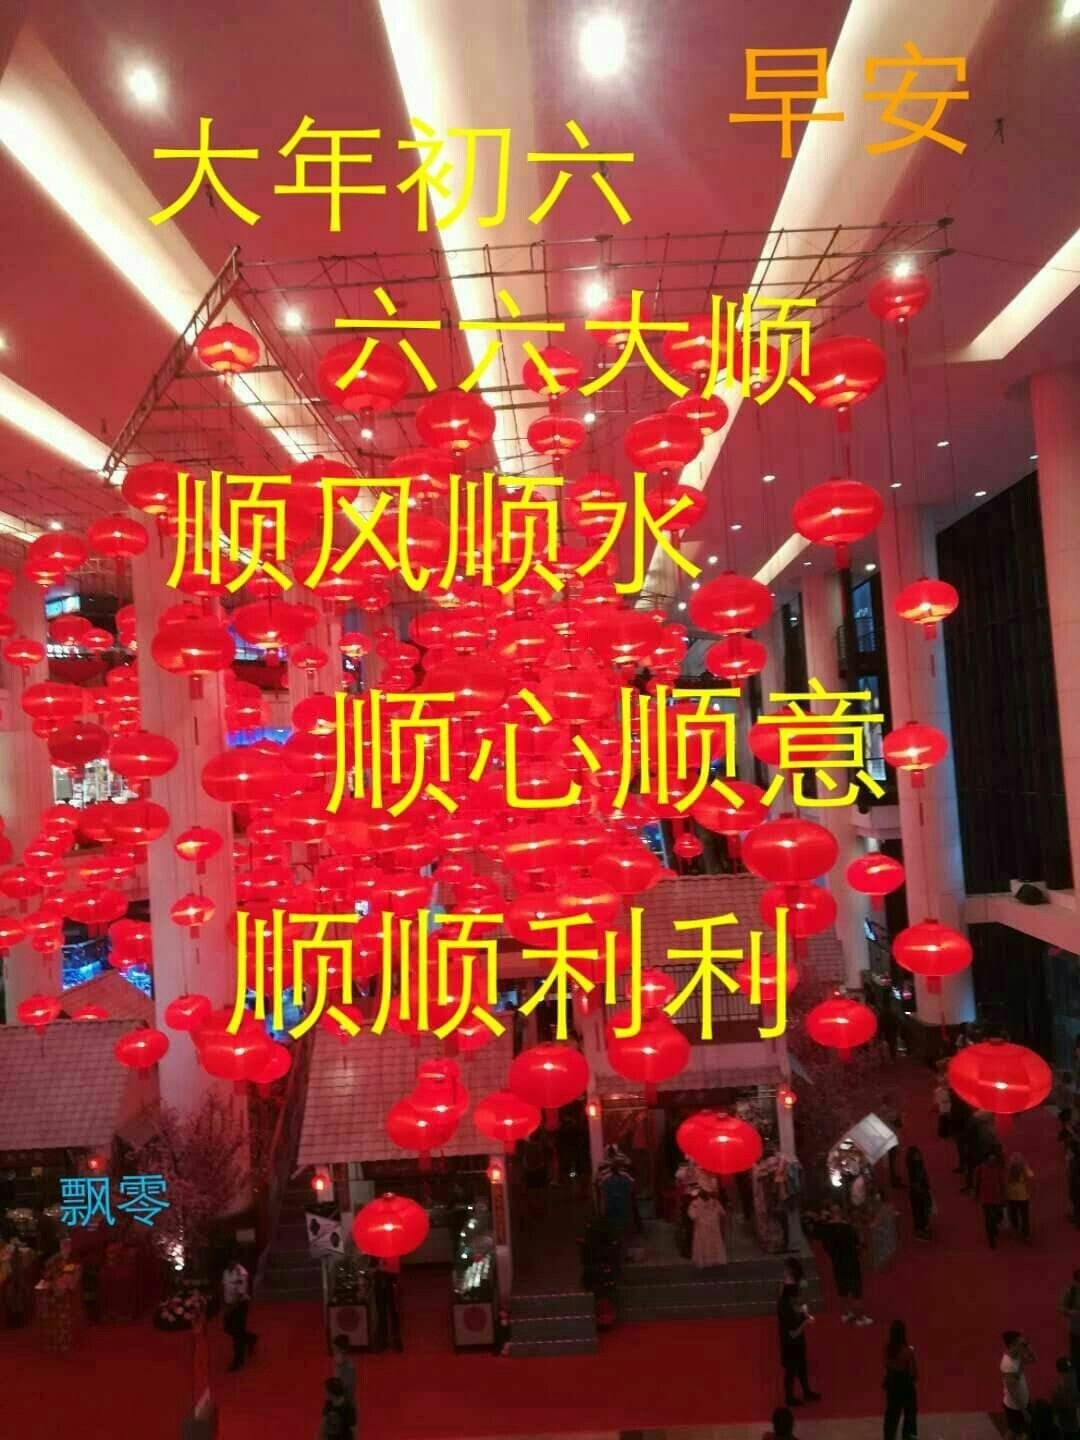 Pin by Kim Fah Ho on CNY wish Chinese new year greeting